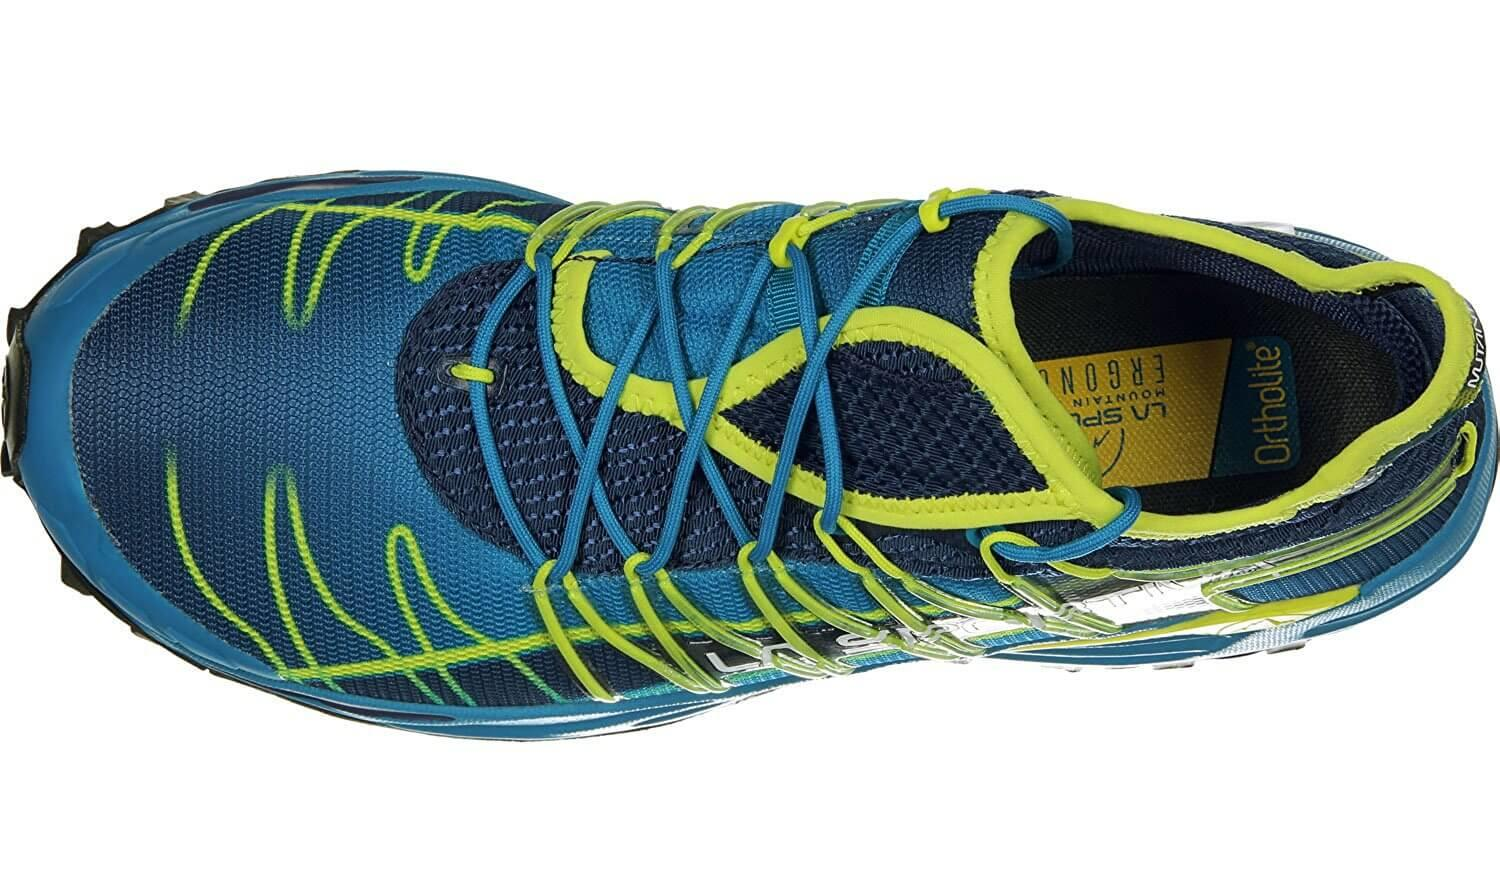 the outsole of the La Sportiva Mutant is breathable and features a snug, comfortable fit